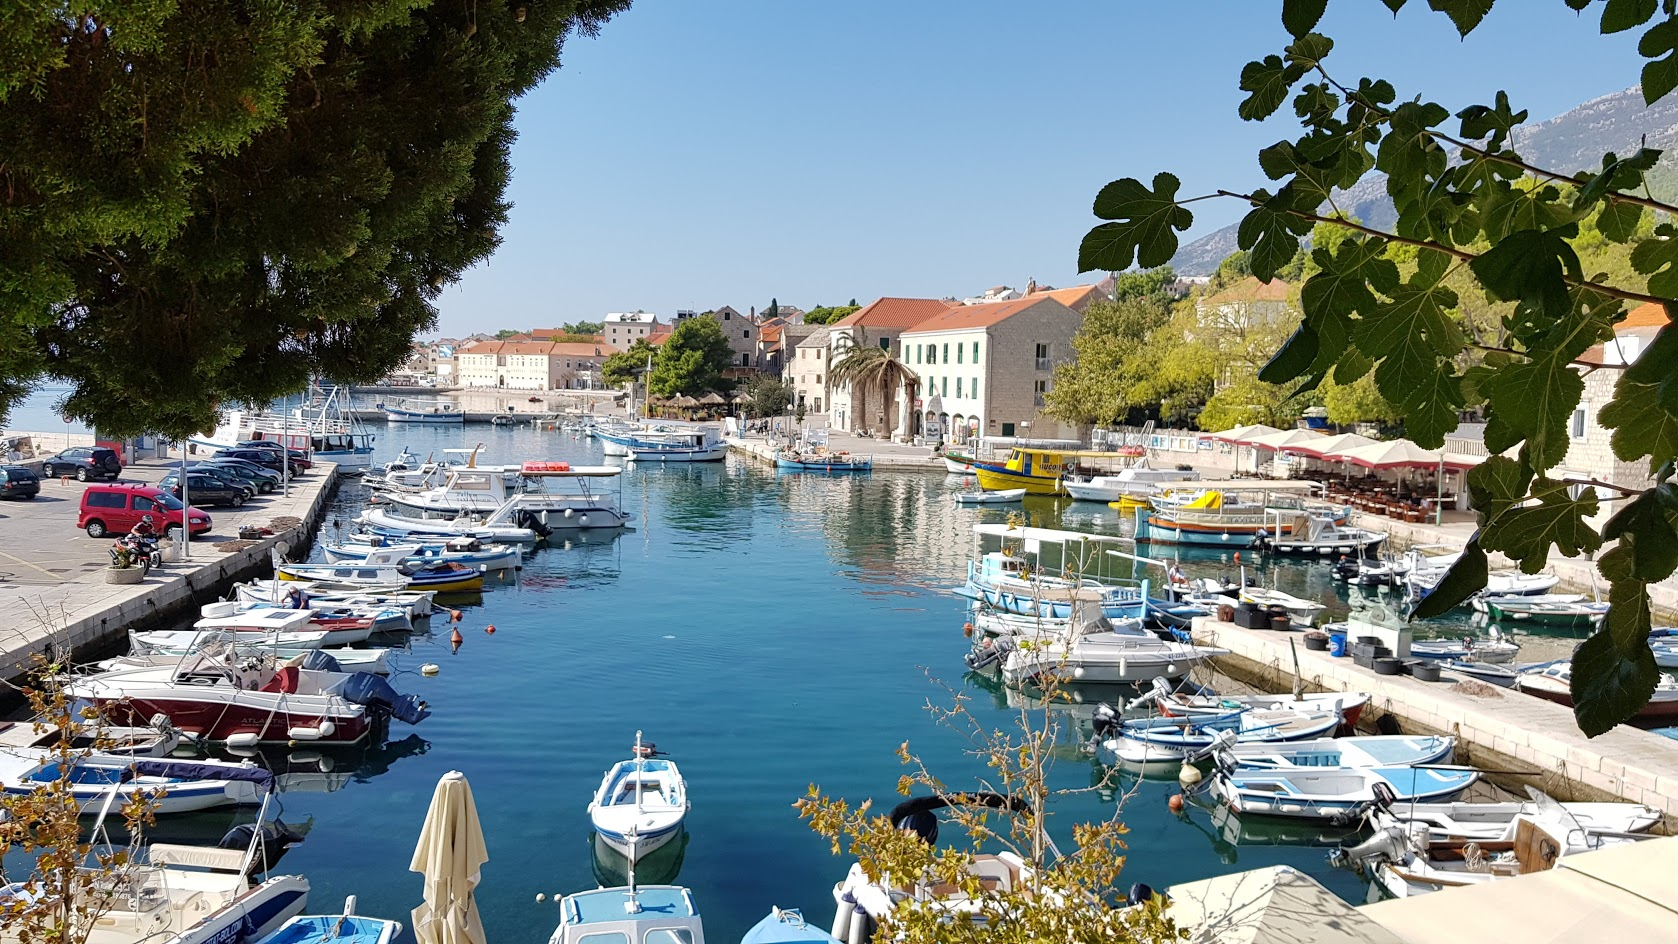 Things to do on Brač while staying at Villa Giardino in Bol 2021